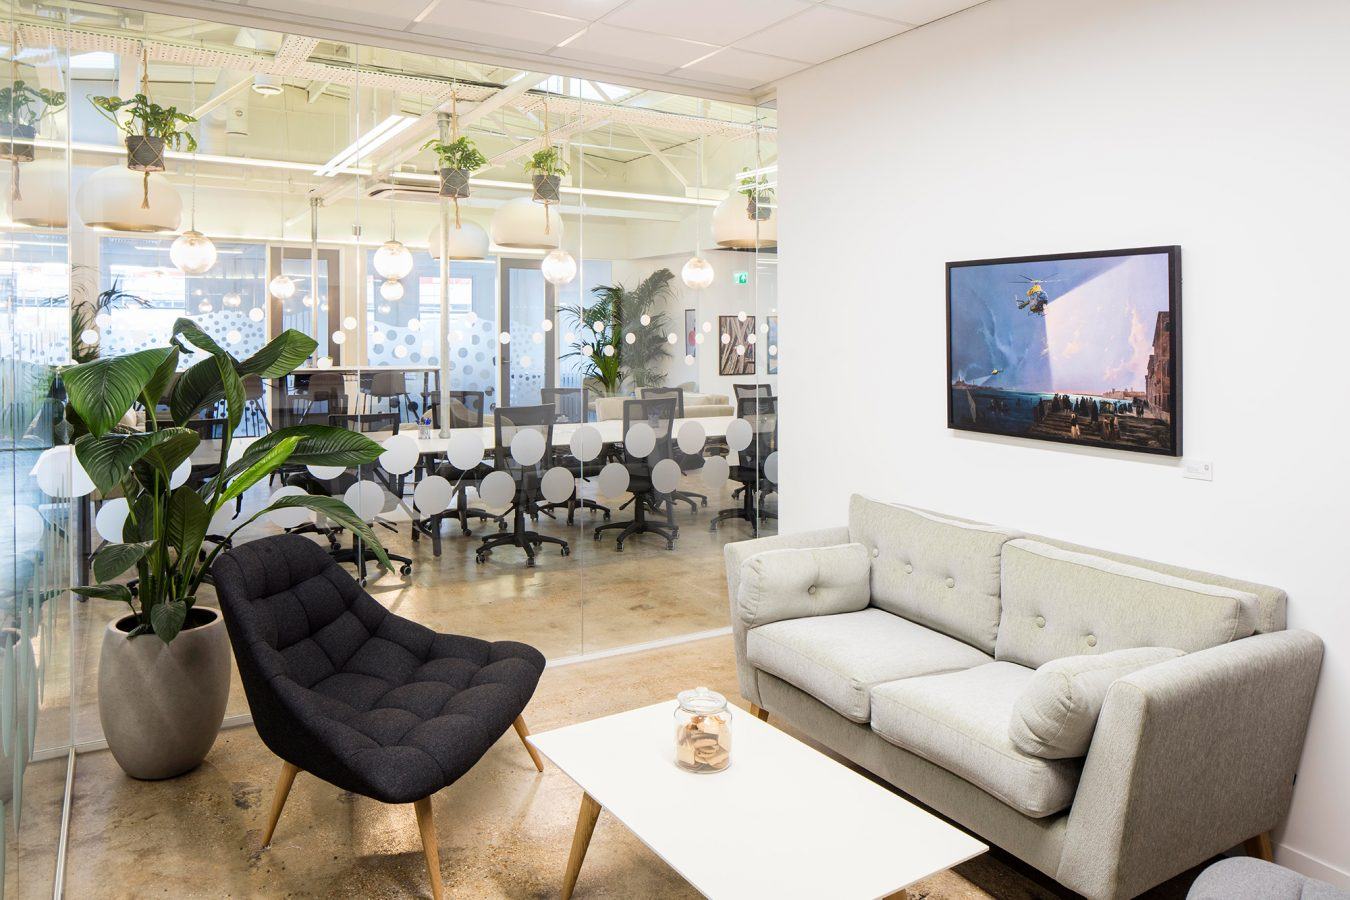 Co-working space near Finsbury Park